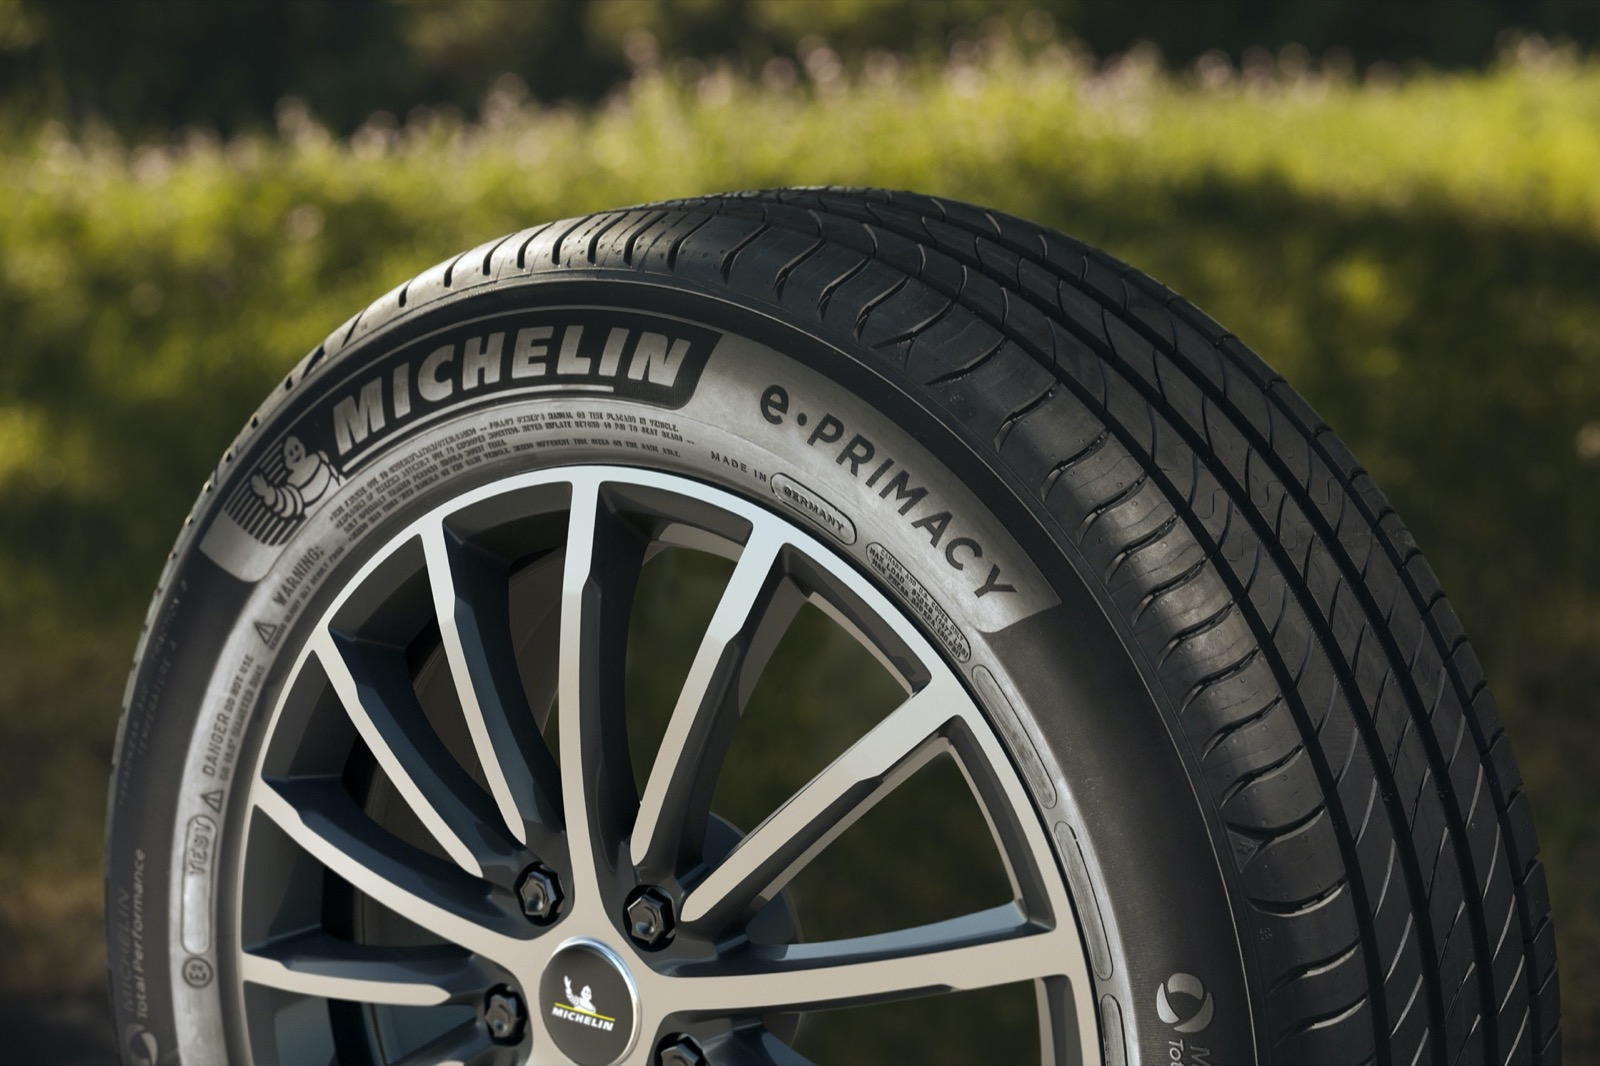 Michelin Eprimacy 10